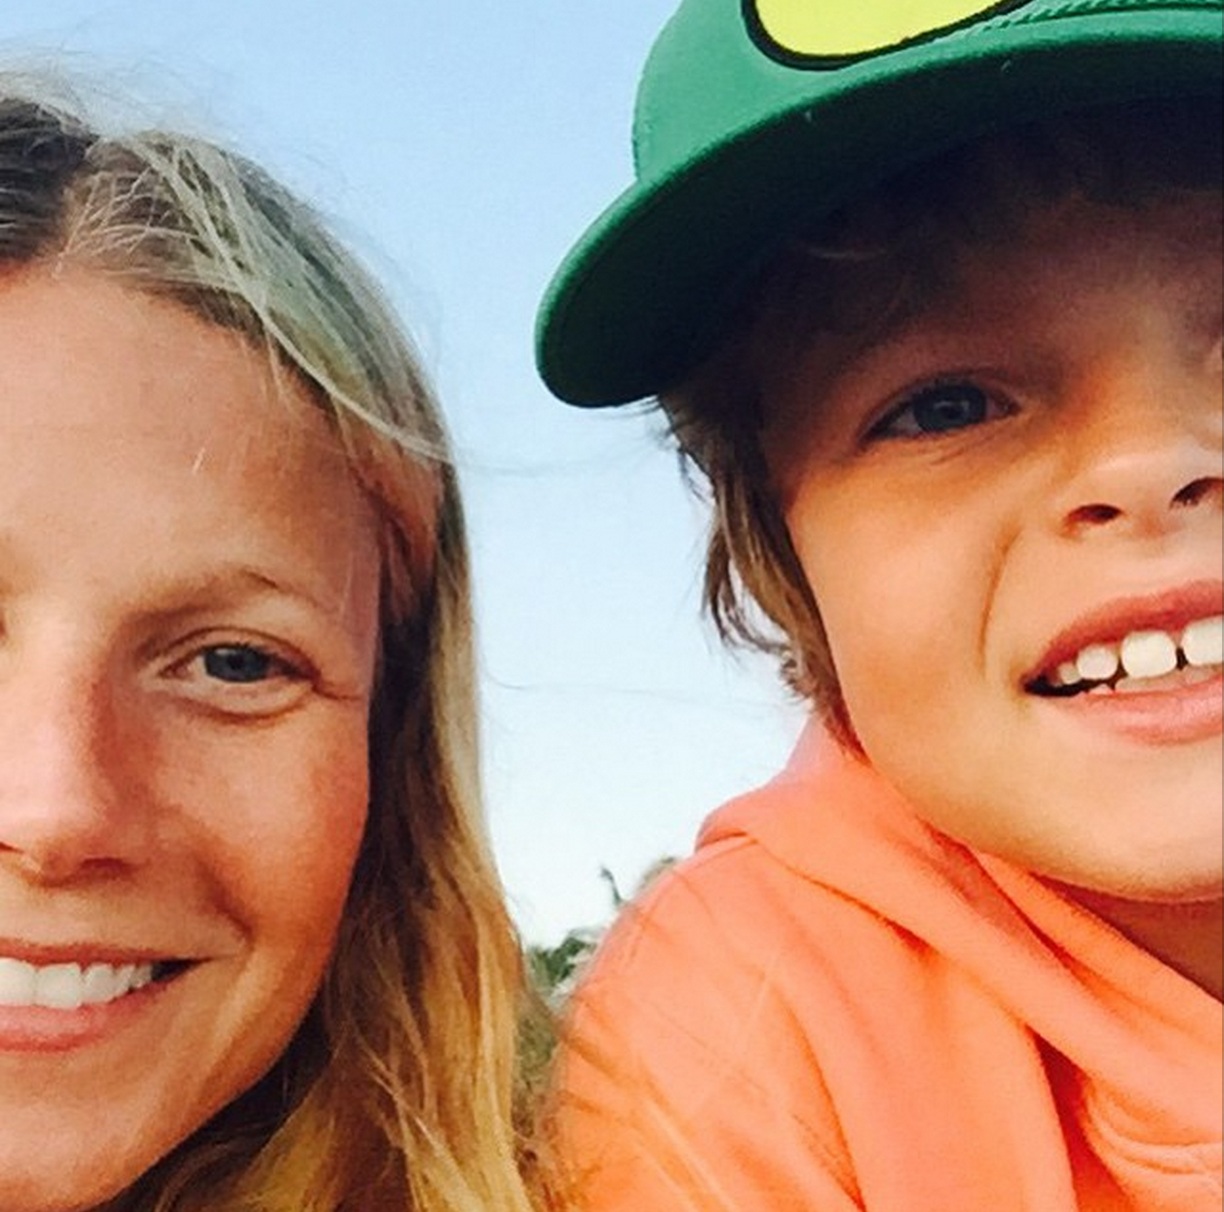 Gwyneth Paltrow and Chris Martin's Son Moses Is a Football Star in the Making